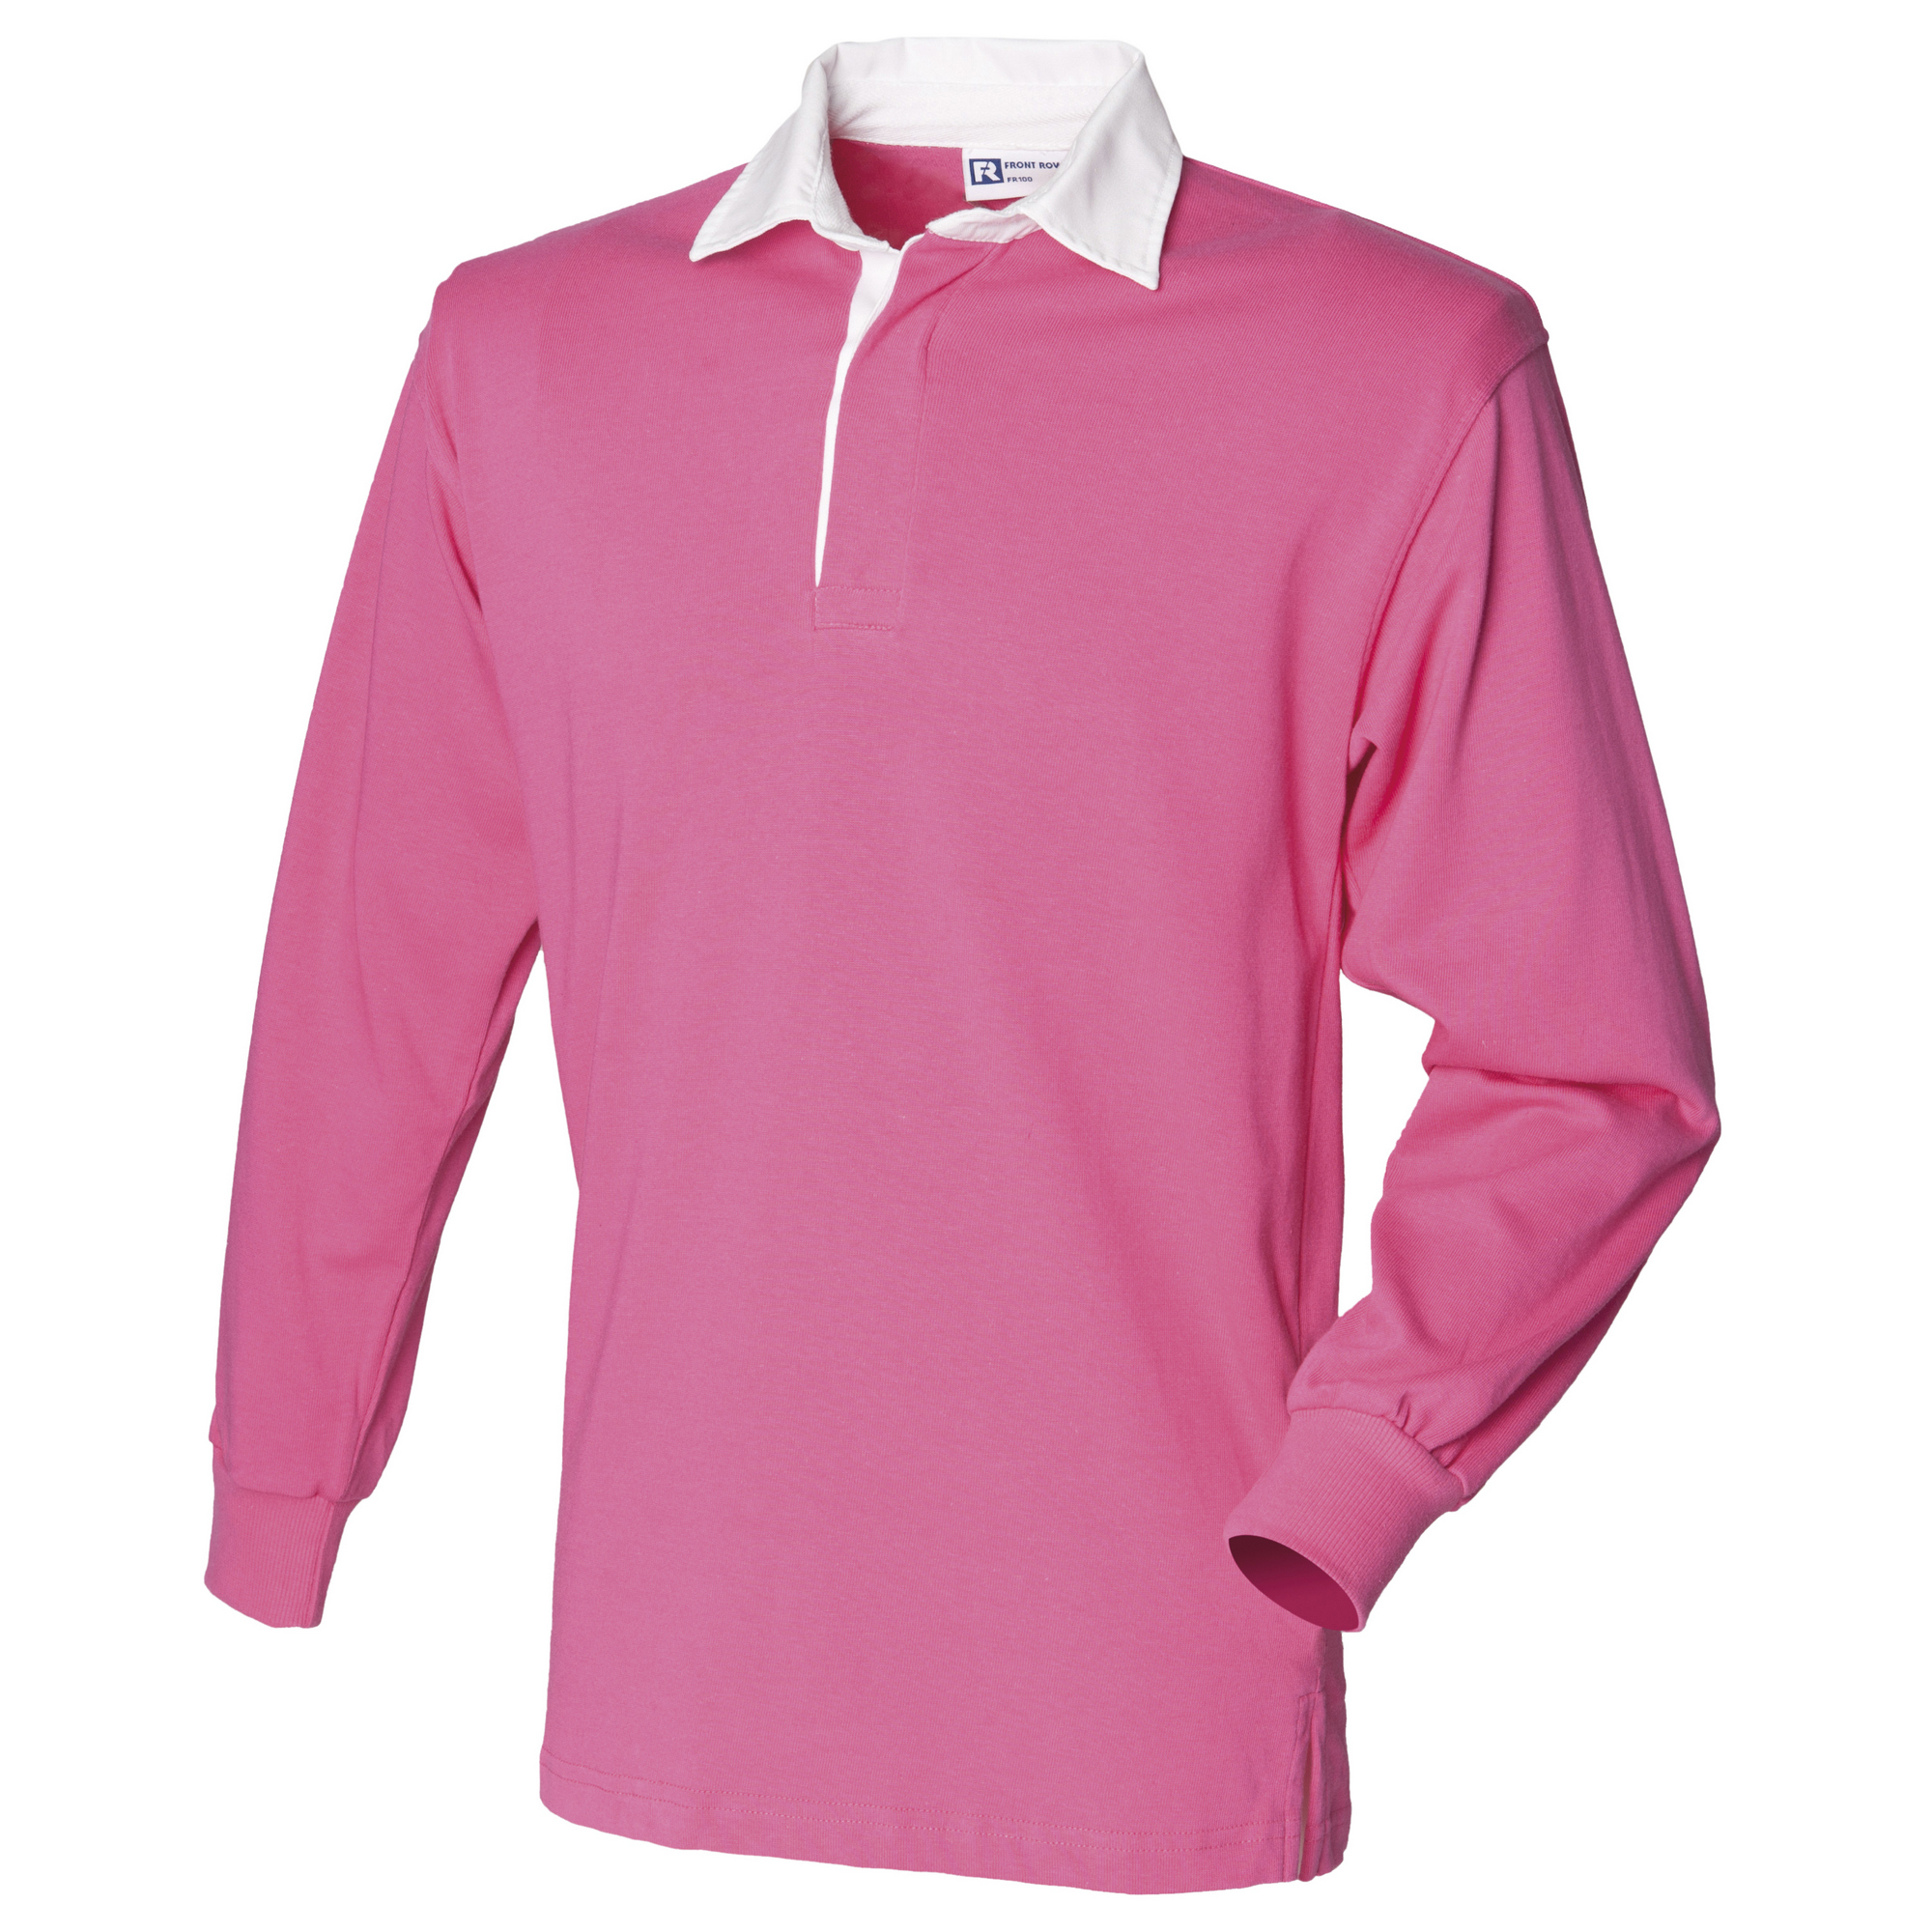 Front-Row-Long-Sleeve-Classic-Rugby-Sports-Cotton-Plain-Polo-Shirt-RW478 thumbnail 2